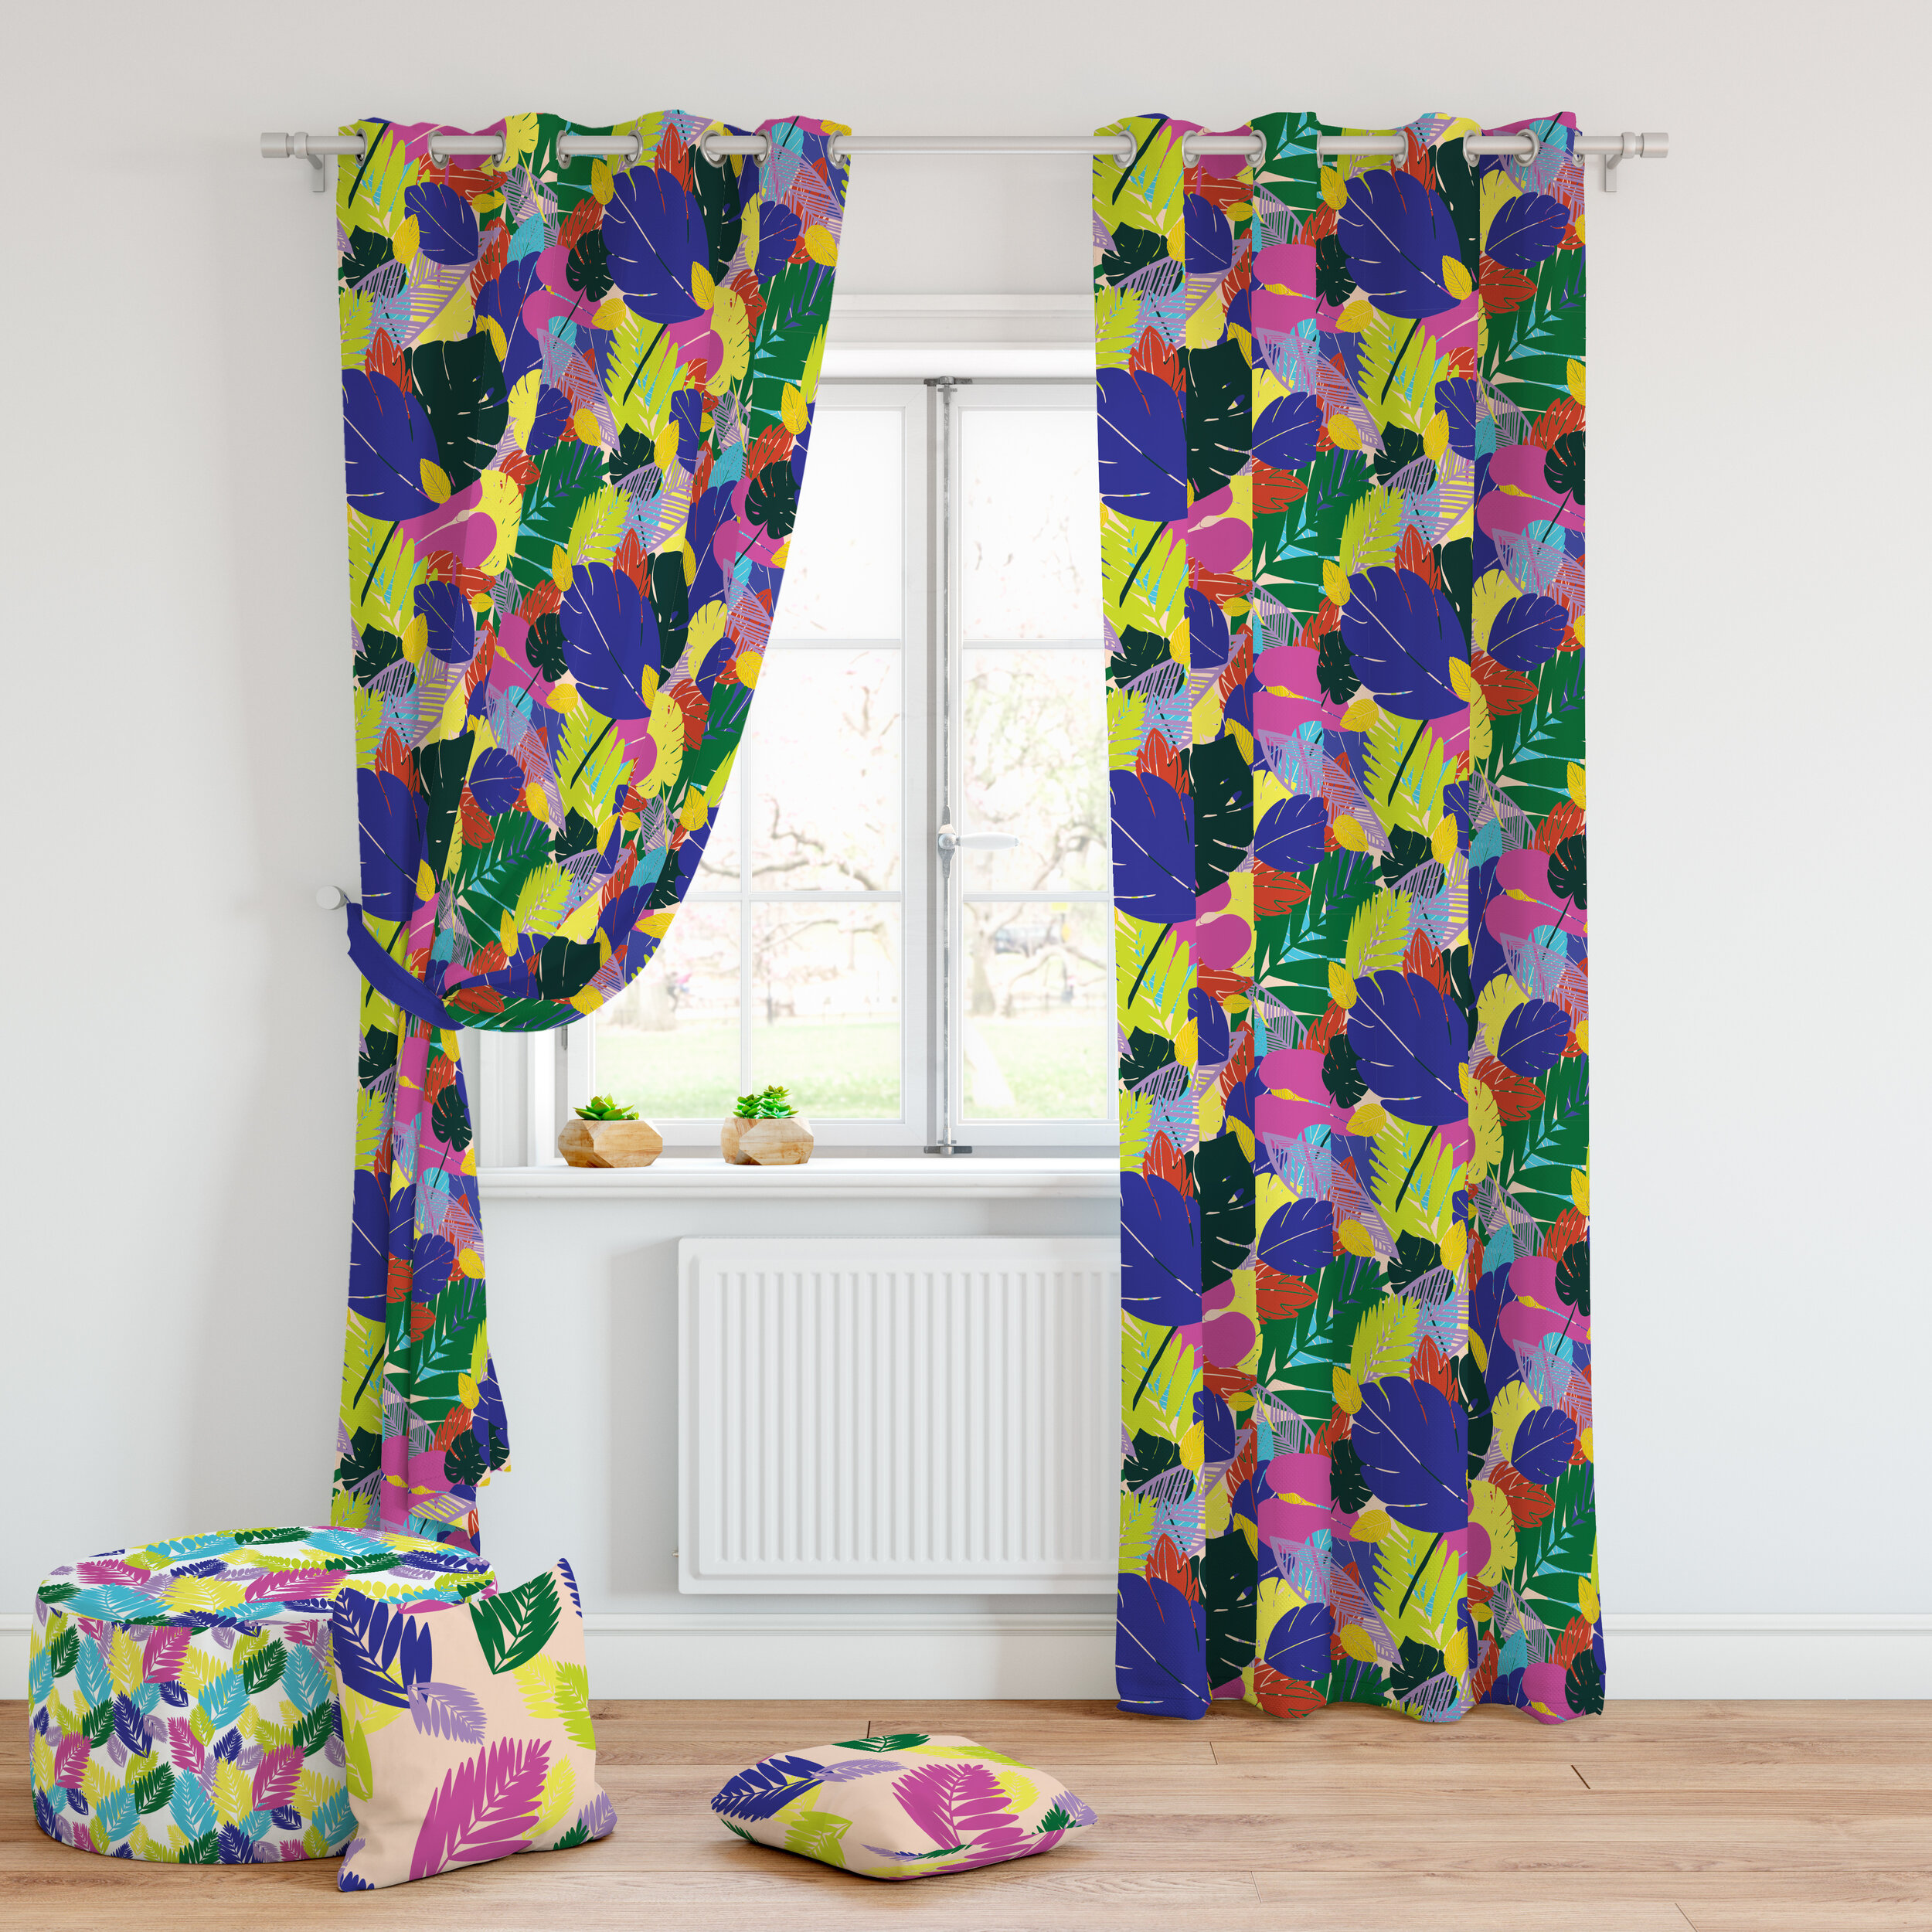 Tropical Kitchen Curtains and pouffe Mock Up.jpg